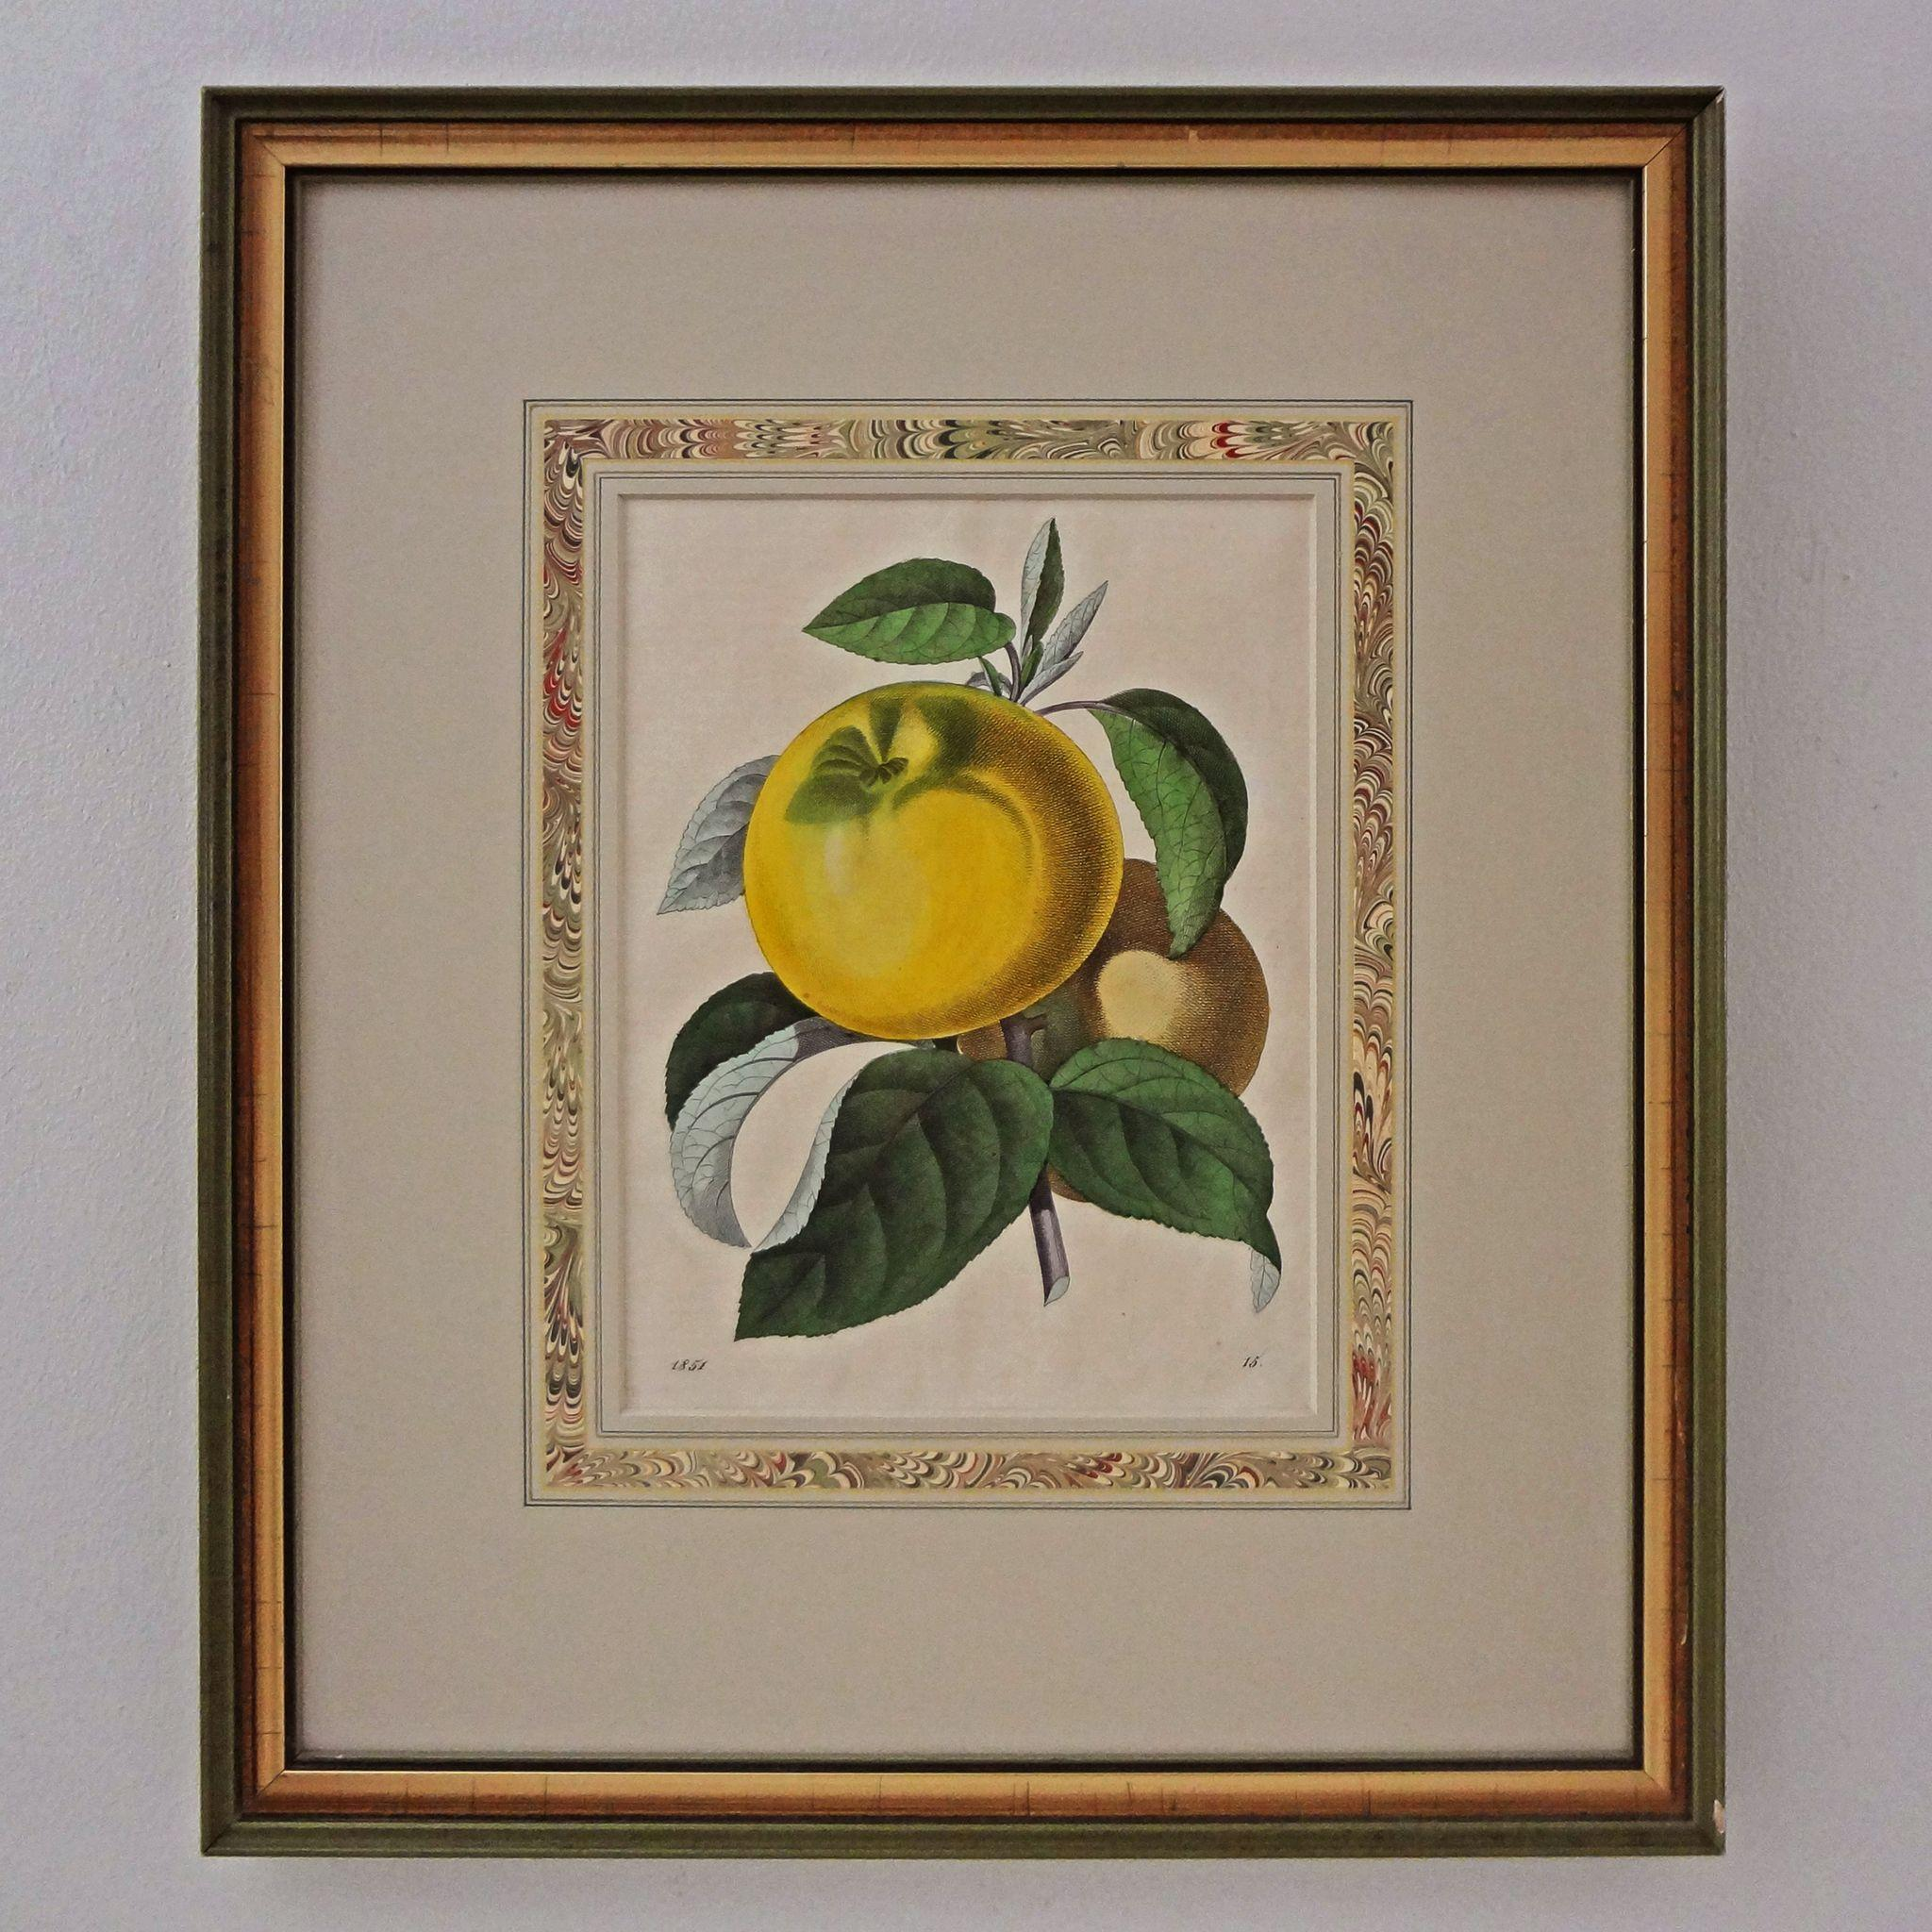 Antique Botanical Yellow Fruit Color Engraving Matted